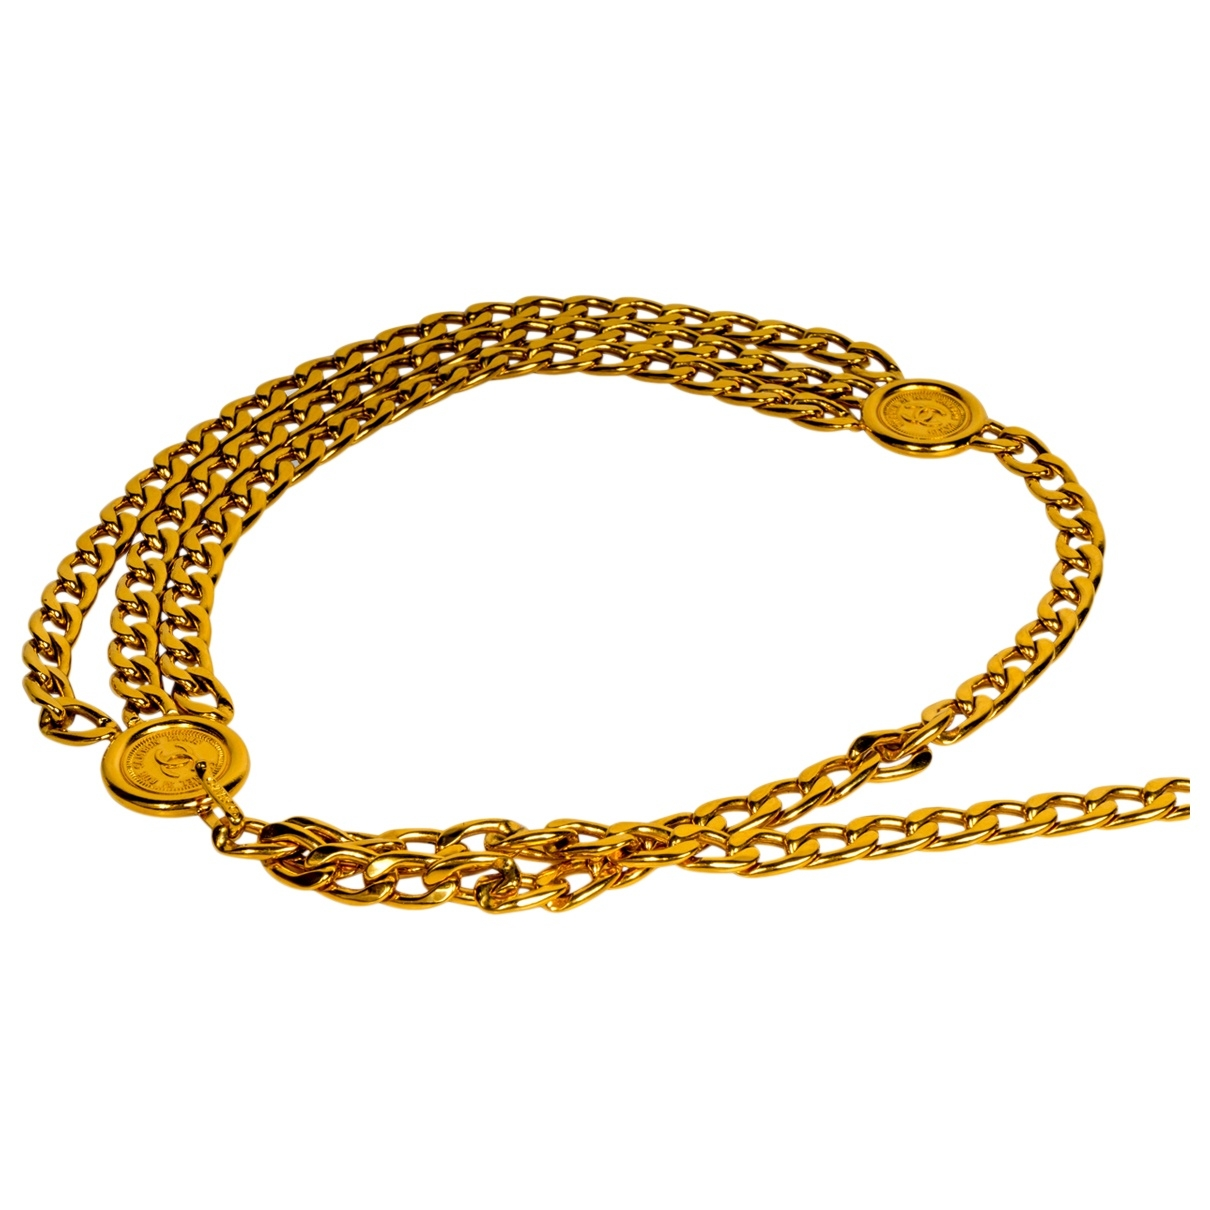 Chanel \N Gold Chain belt for Women 95 cm